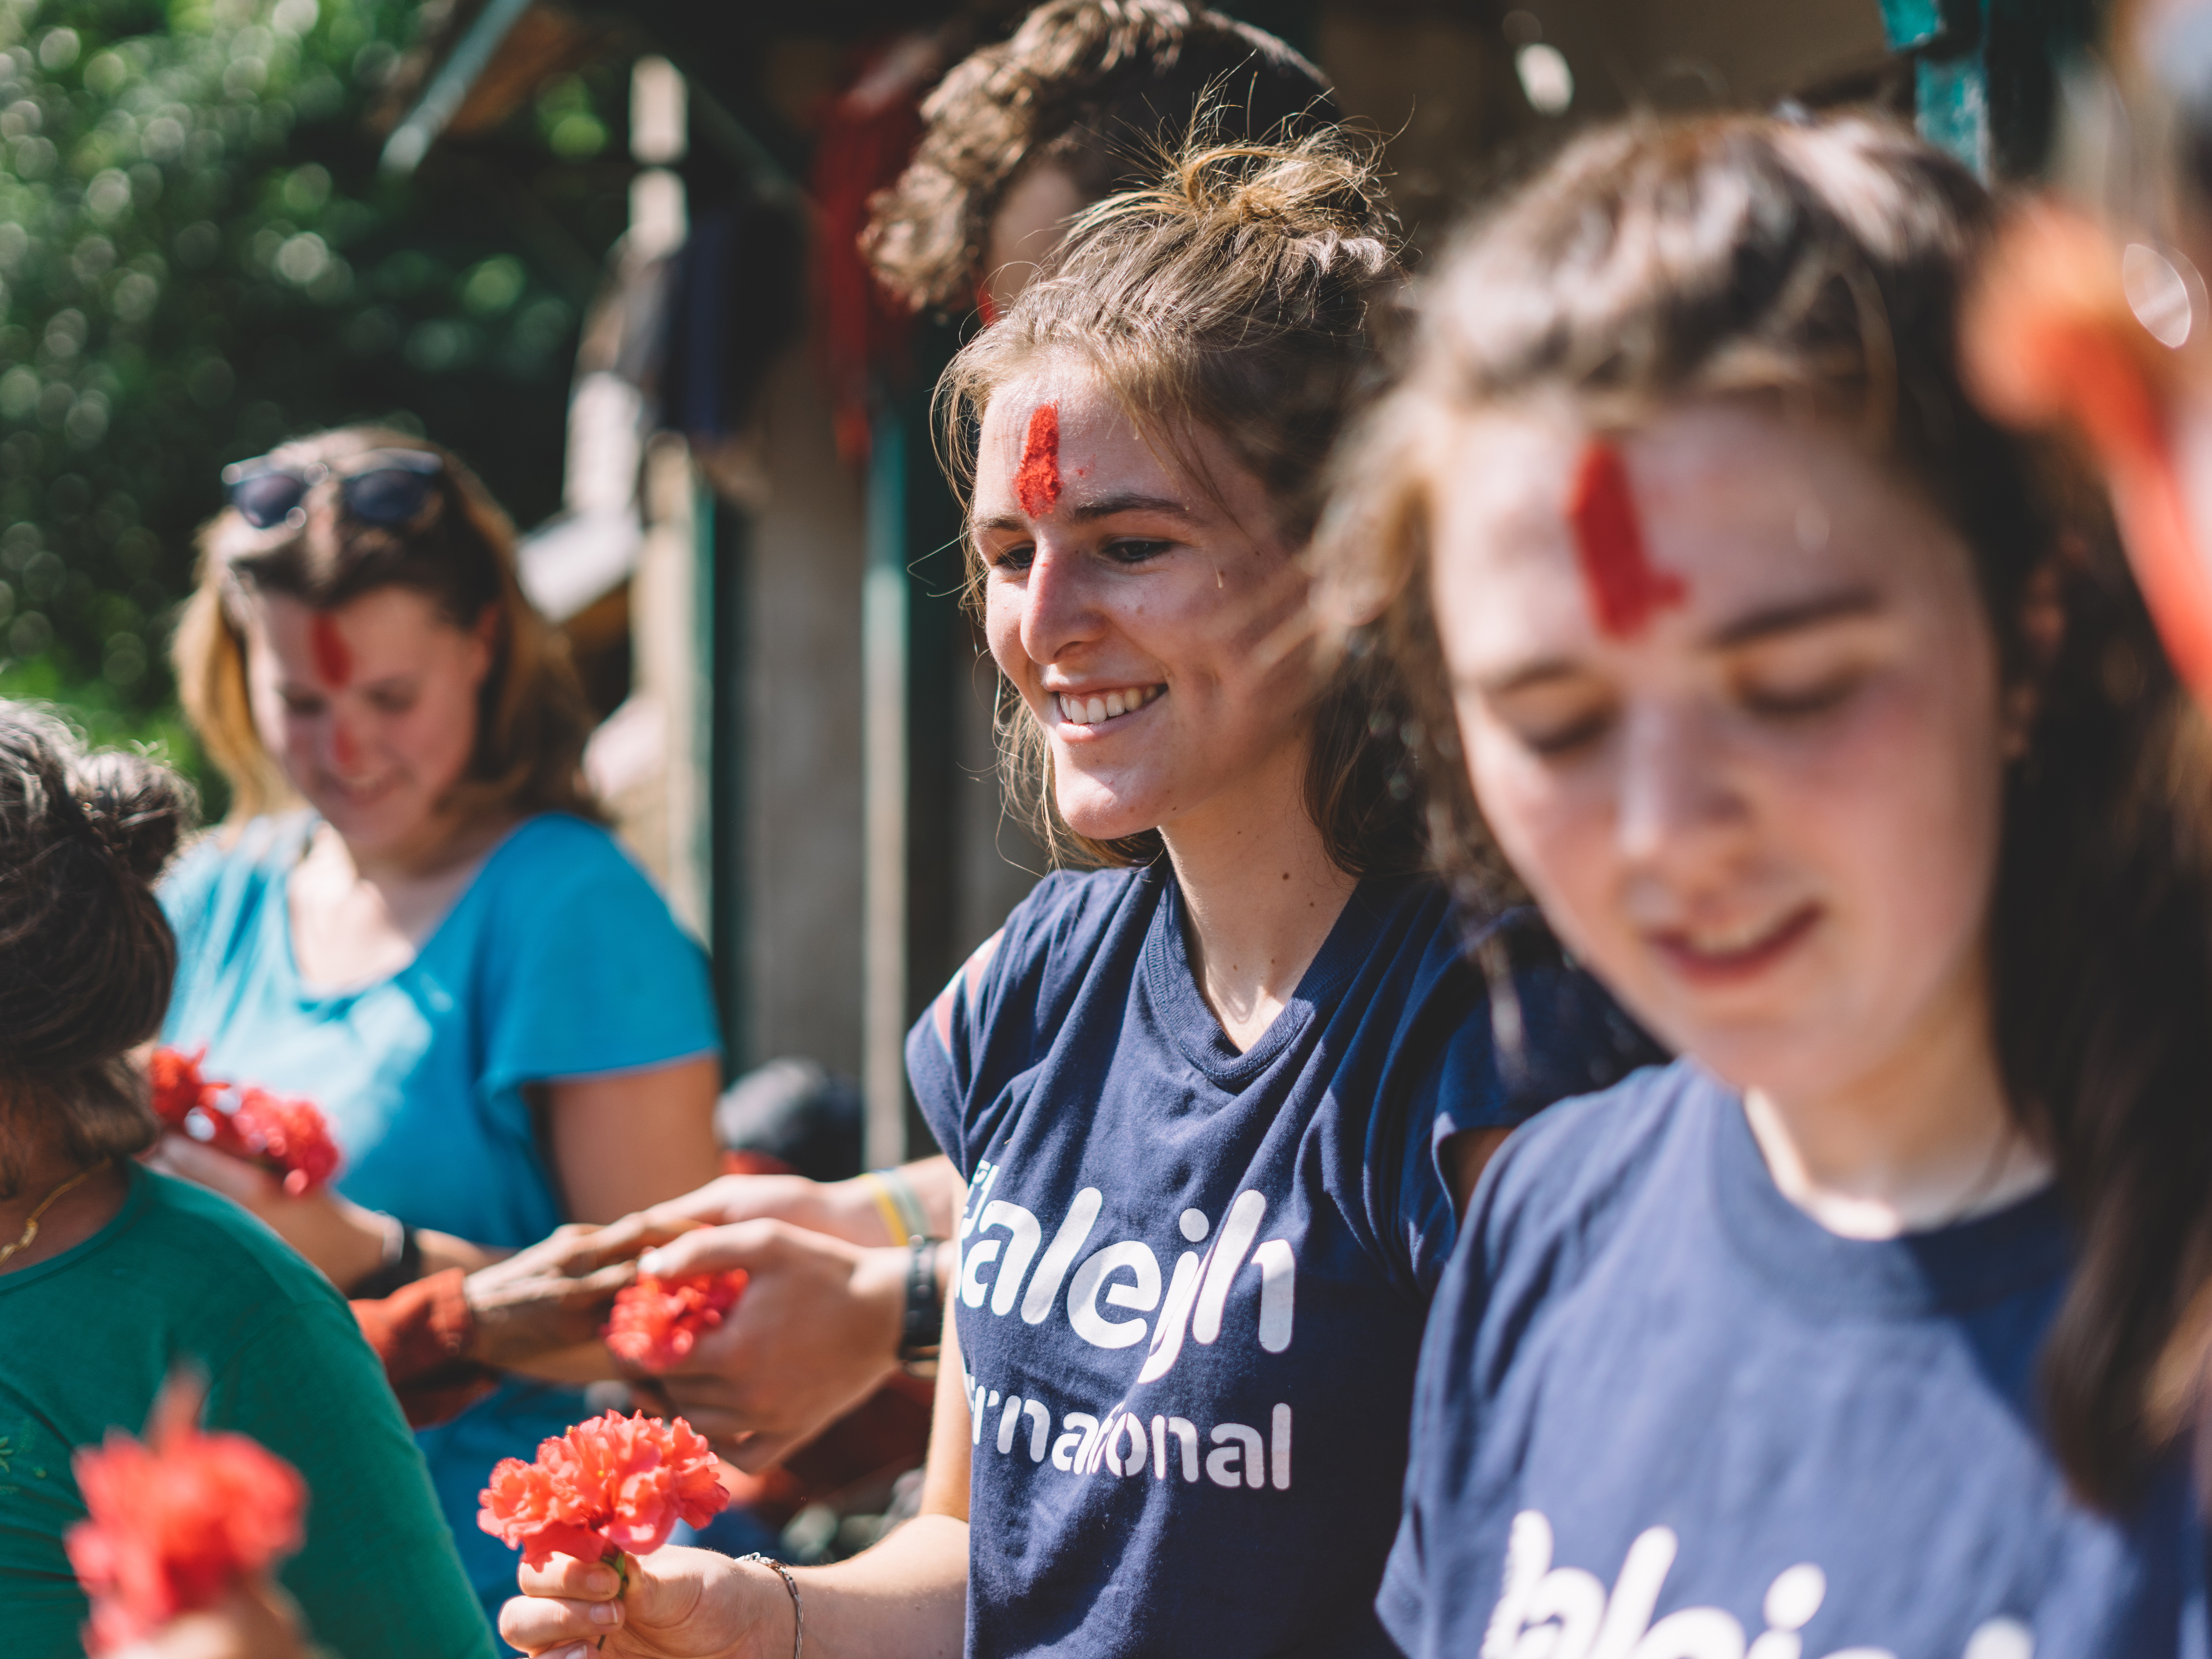 Summer Program - Preserving the Environment | Raleigh International - Summer 2020 Travel Abroad Programs, Ages 17-24